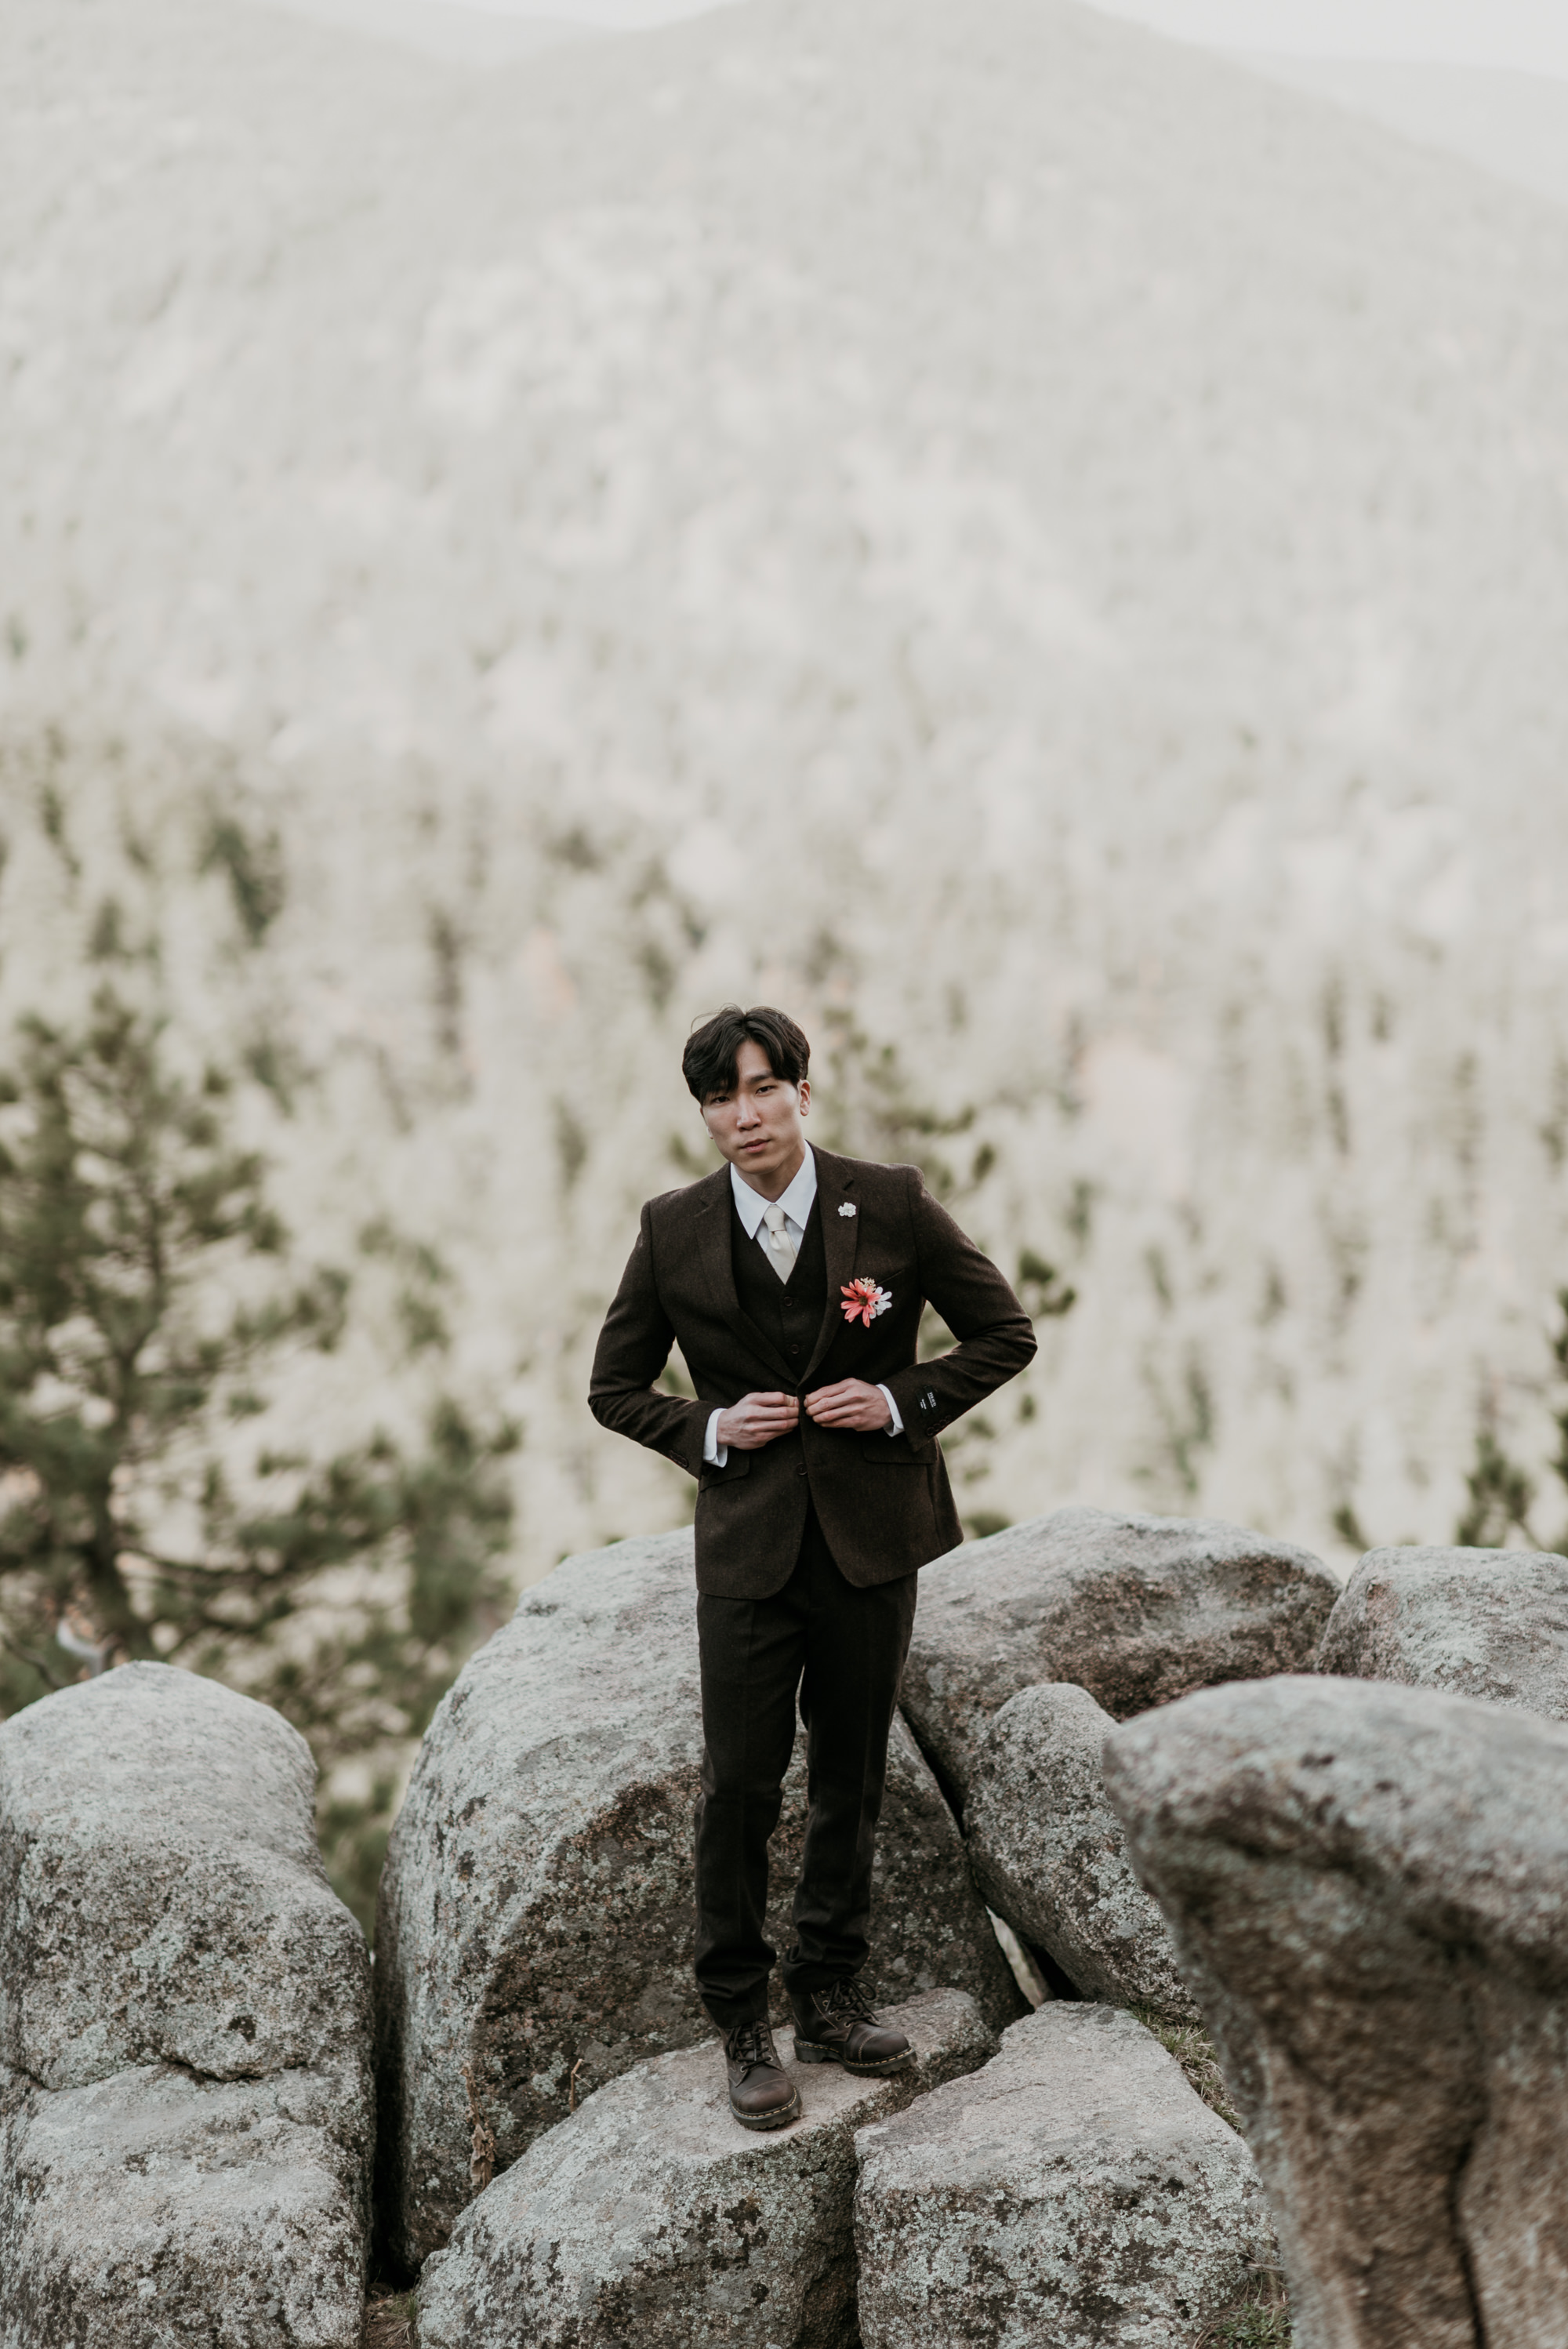 A wool suit kept our groom warm in the cool morning air.